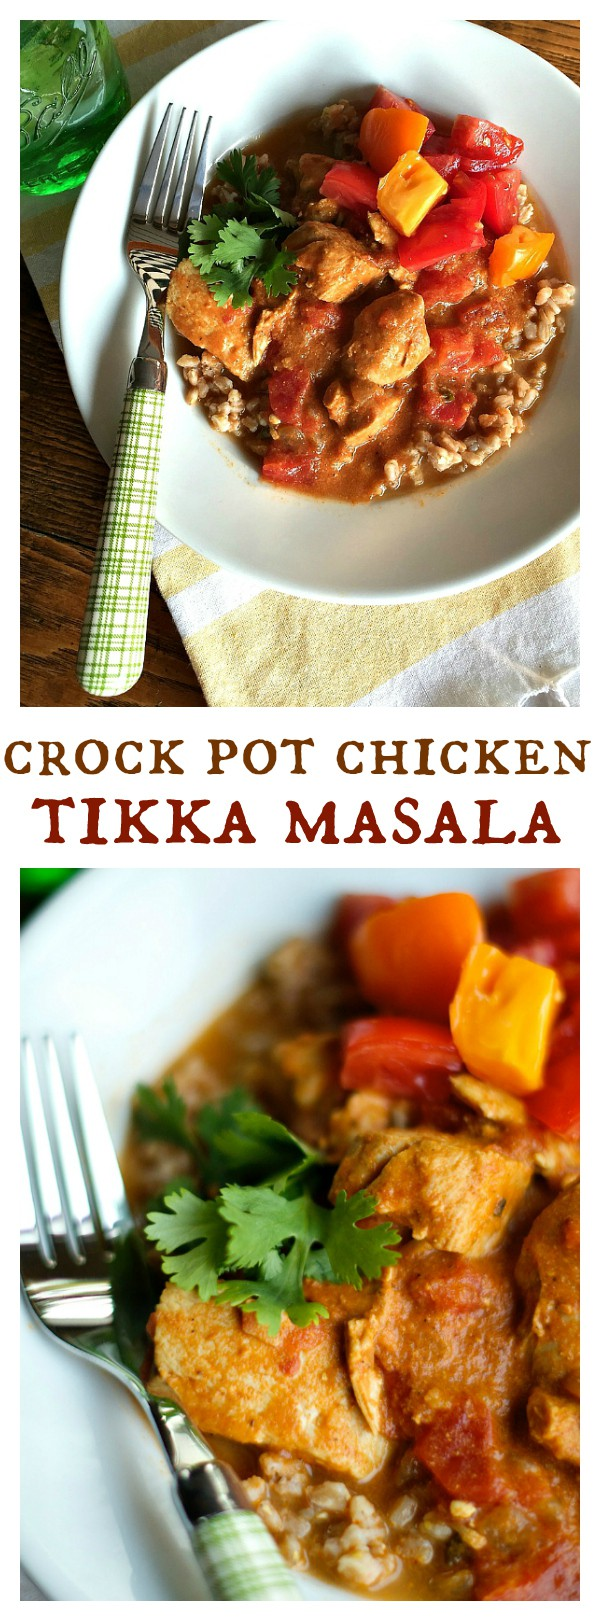 Crock Pot Chicken Tikka Masala is a comforting Indian dish to serve as a weeknight meal, or for weekend dinner guests!